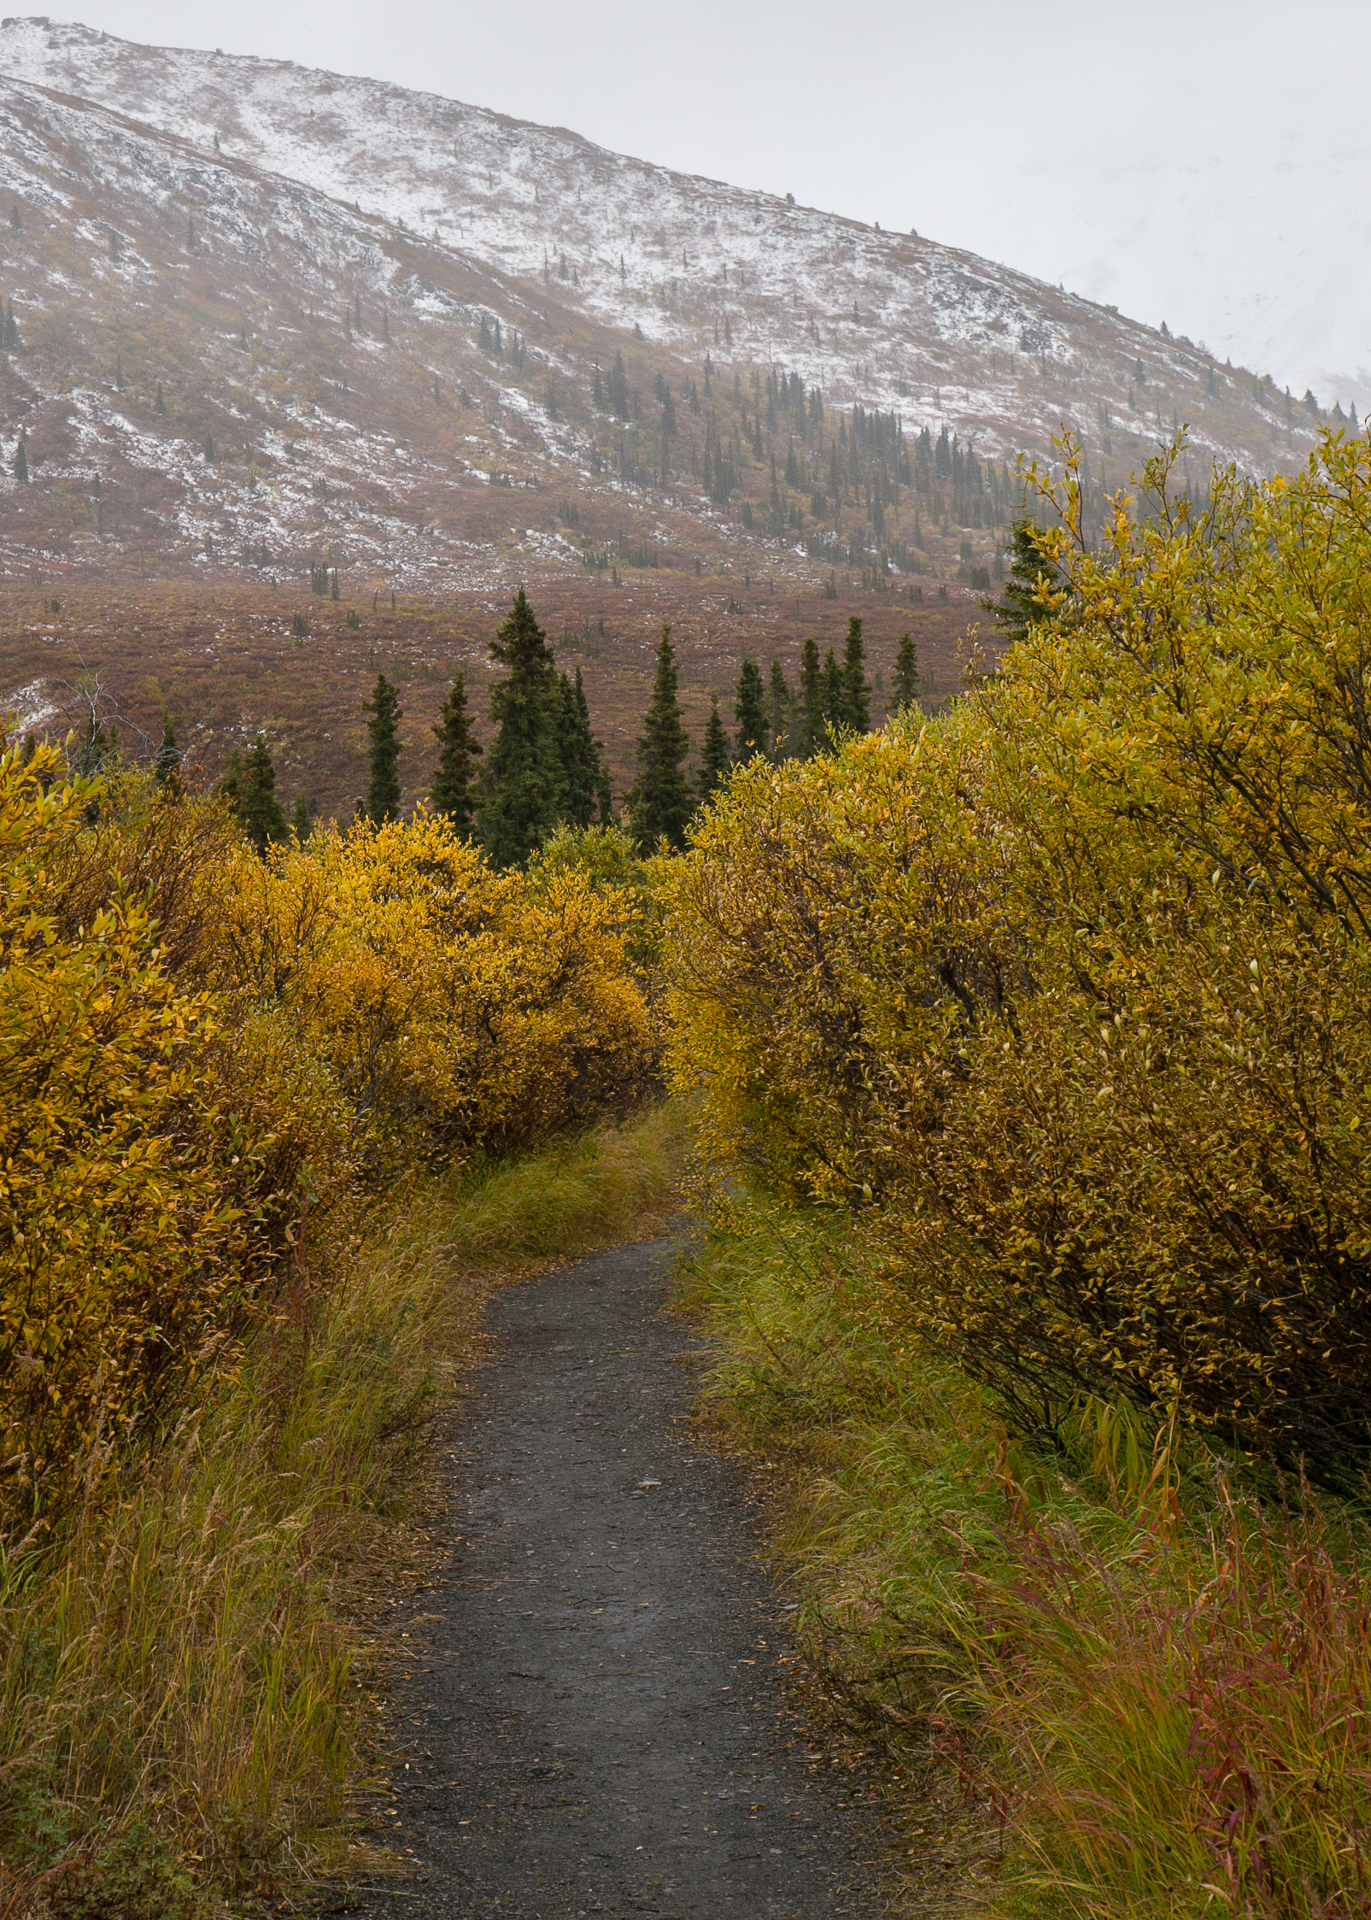 The start of our hike on the Klondike Trail.